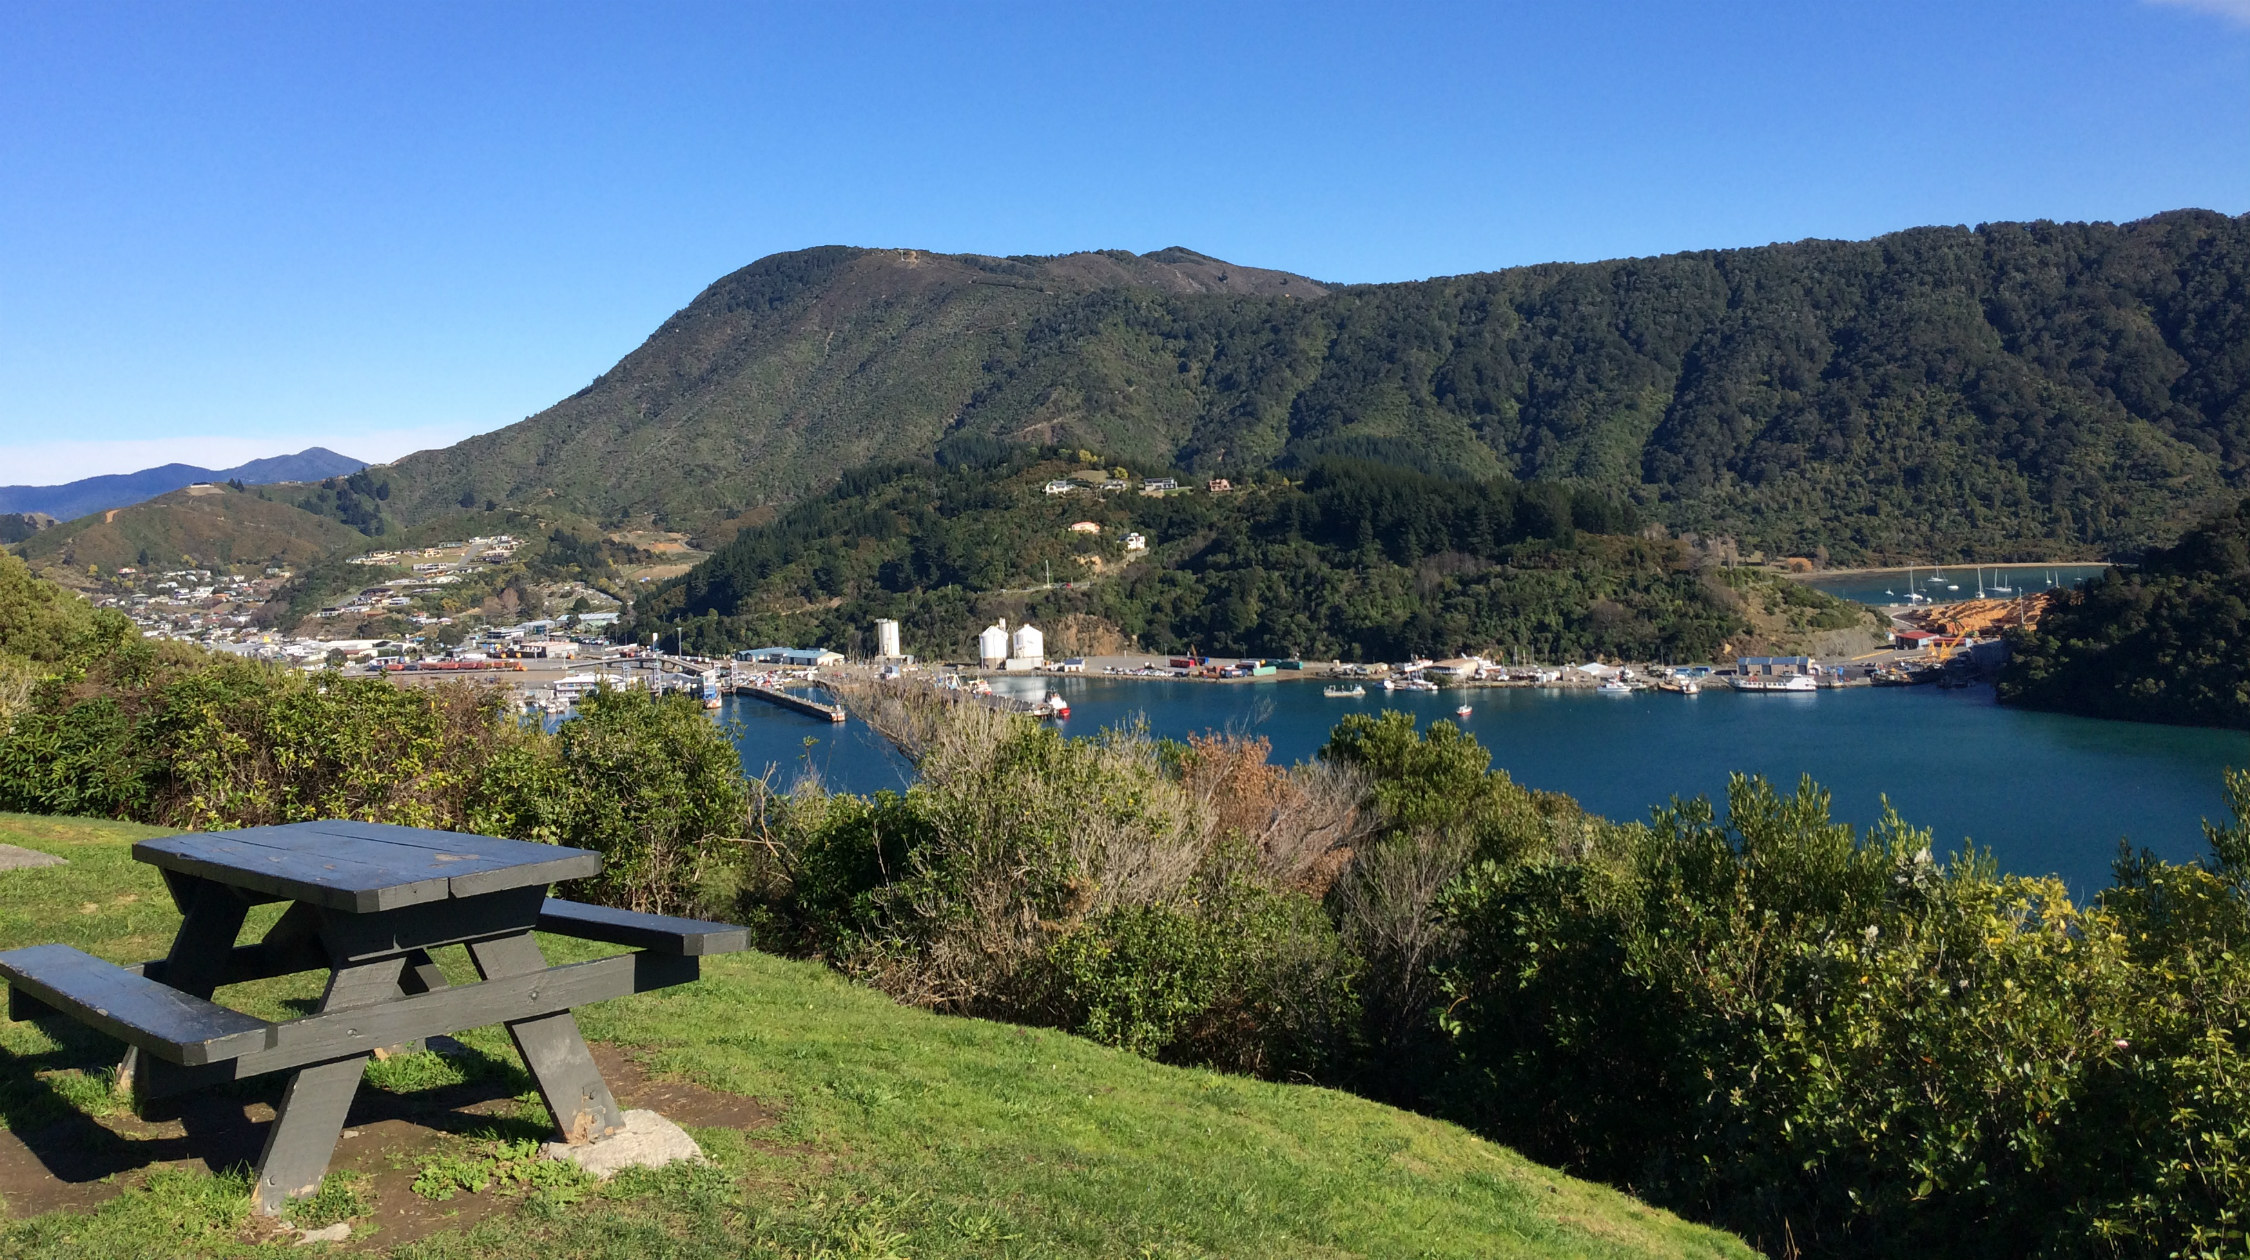 View of the Marlborough Sounds from a nearby hill